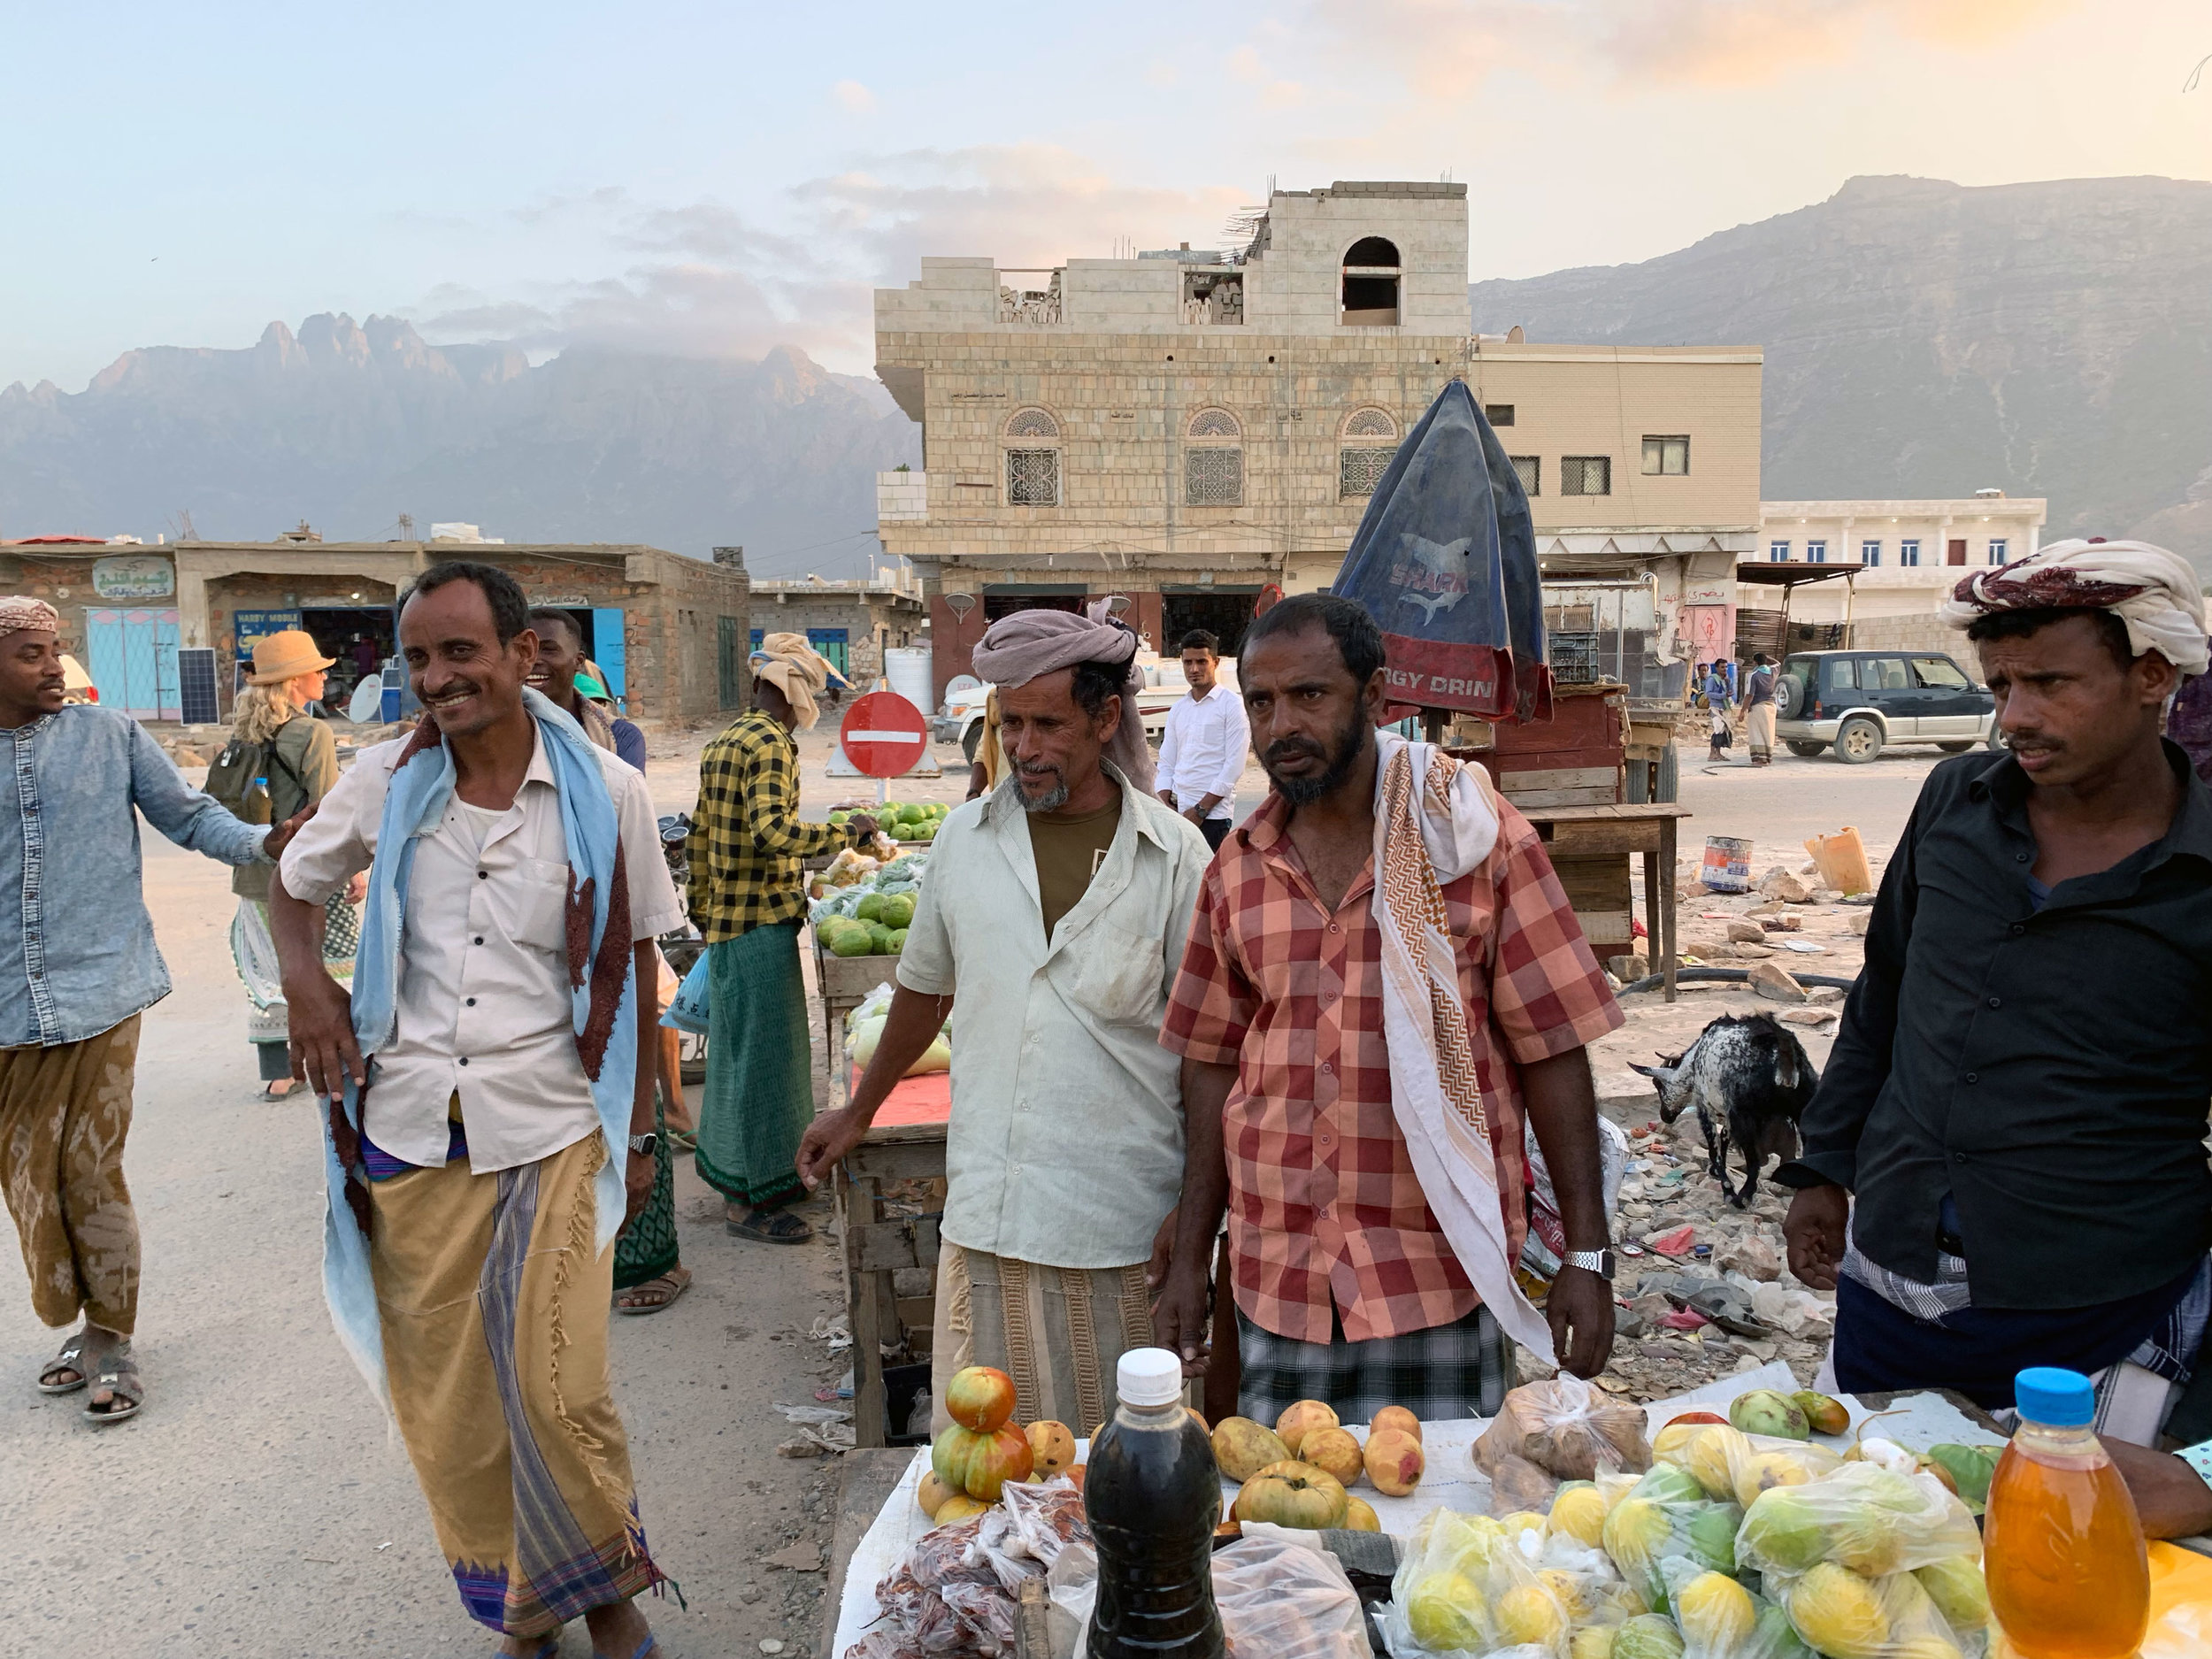 A street market selling fruits in Hadibo, Socotra.